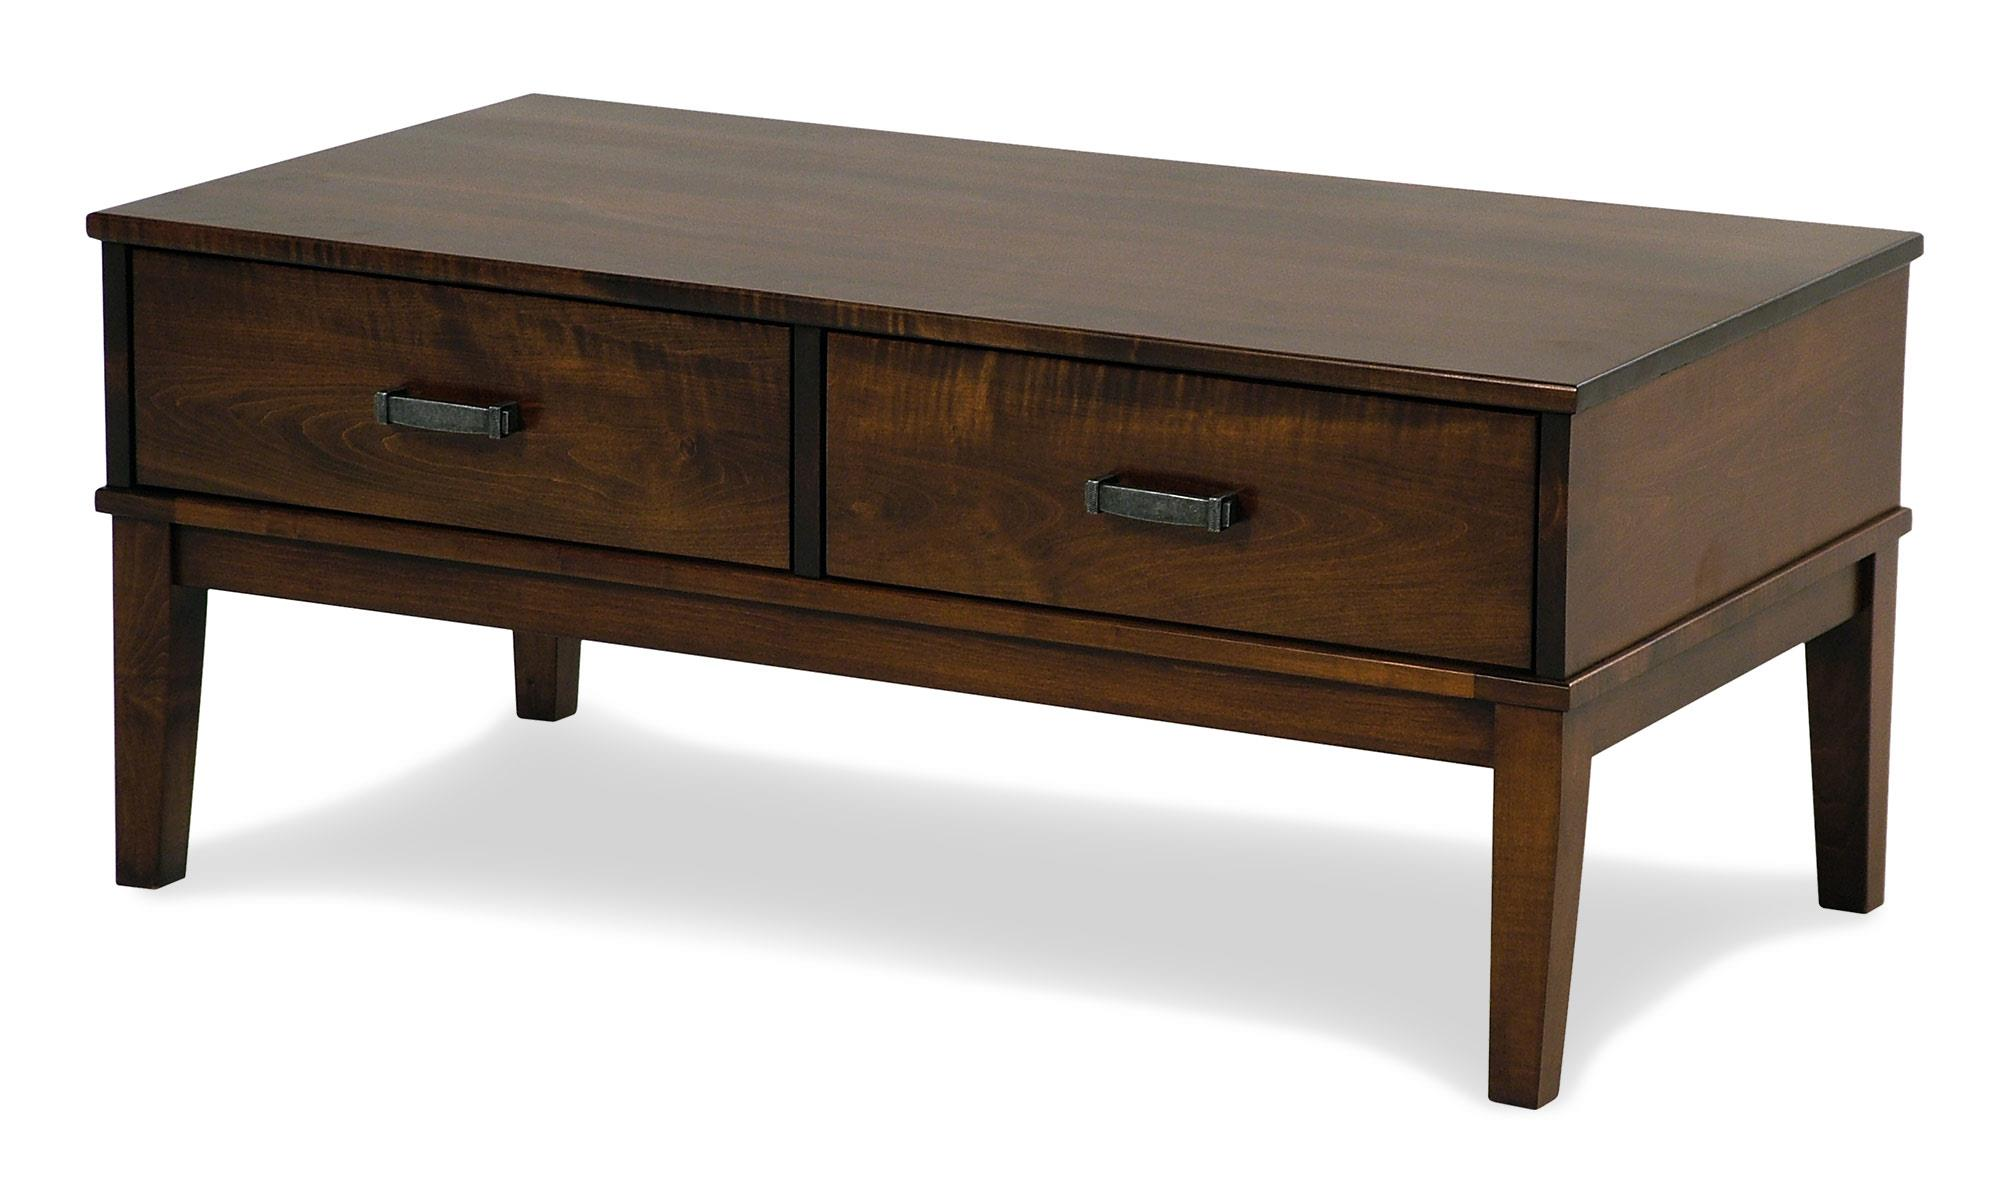 Y & T Woodcraft Asbury Amish Built Maple Cocktail Table - Item Number: 234-MAP117